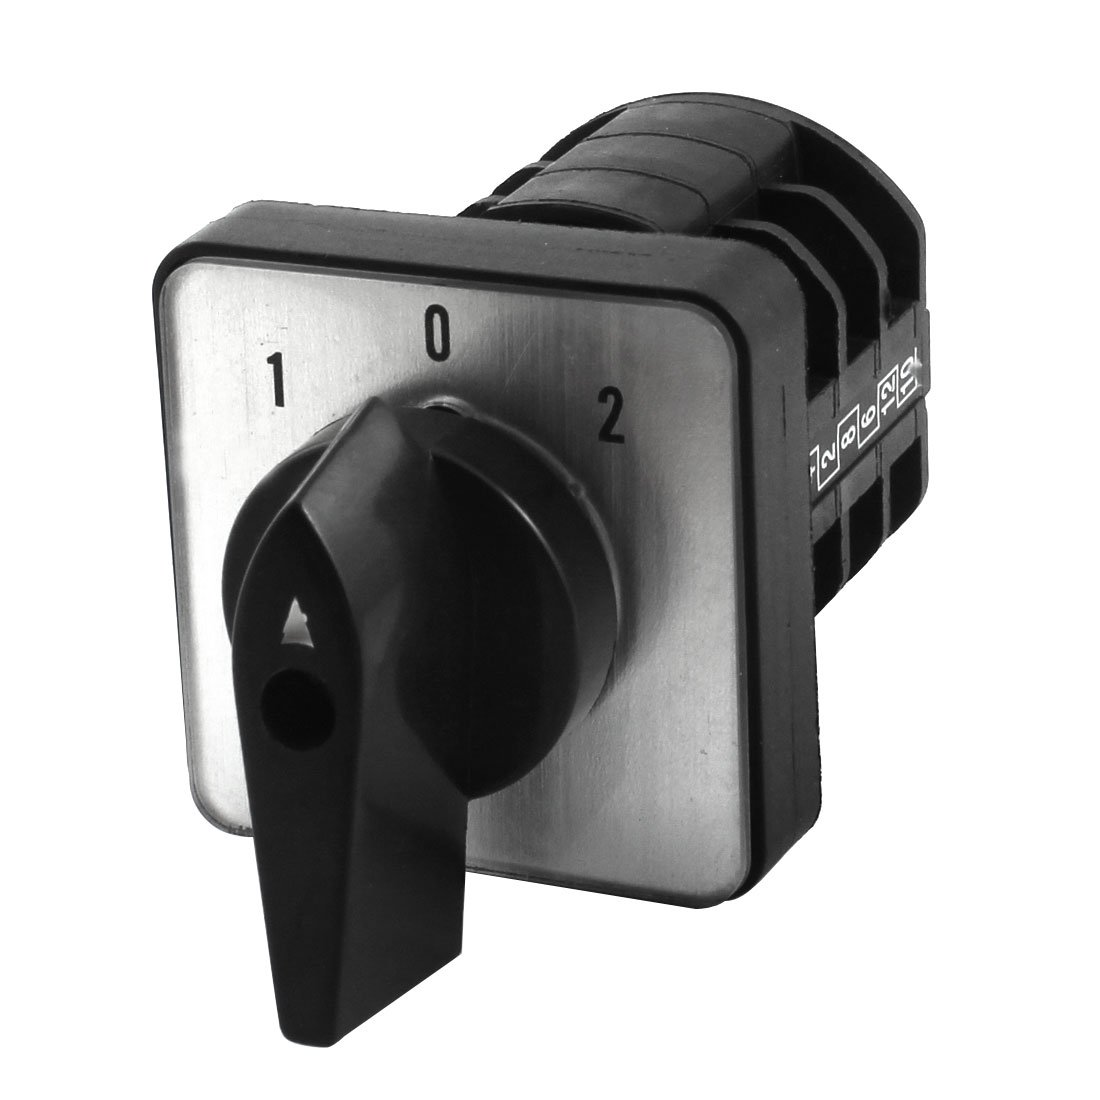 uxcell LW8-10A 380V 10A 3 Pole Panel Mount Universal Cam Changeover Switch